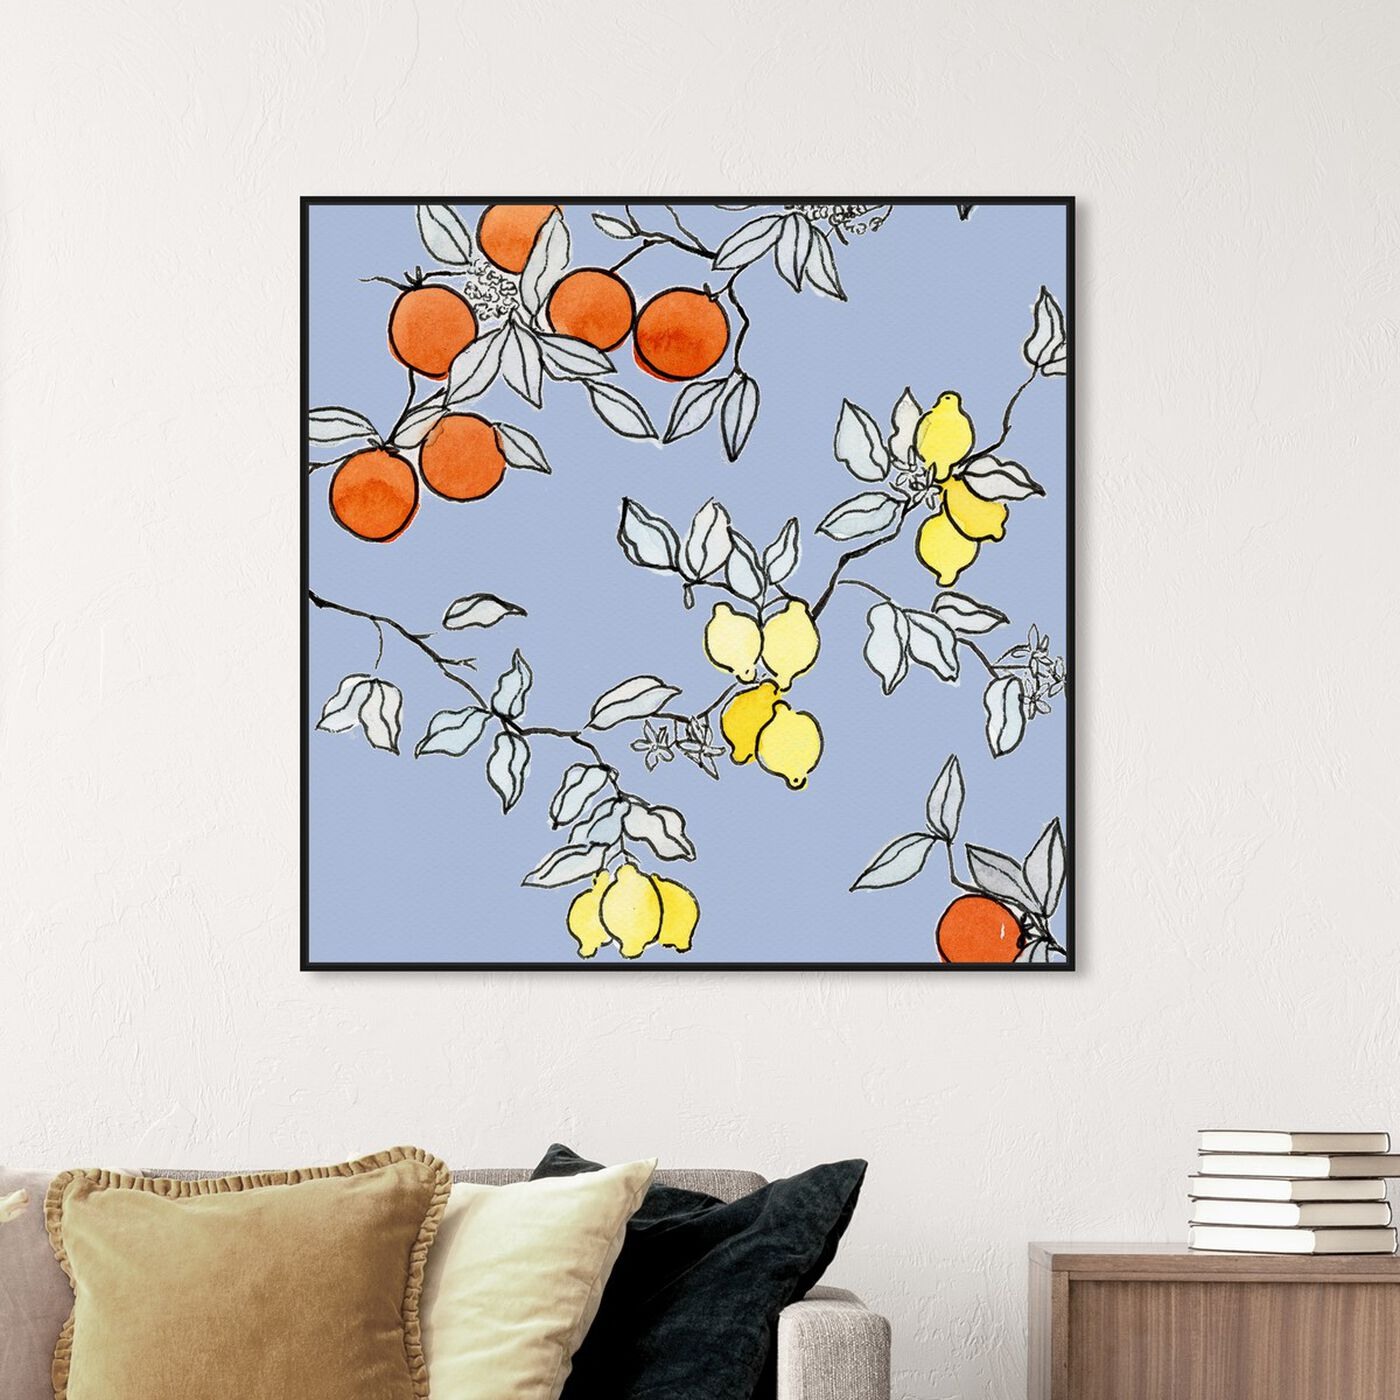 Hanging view of Lemon tree featuring food and cuisine and fruits art.